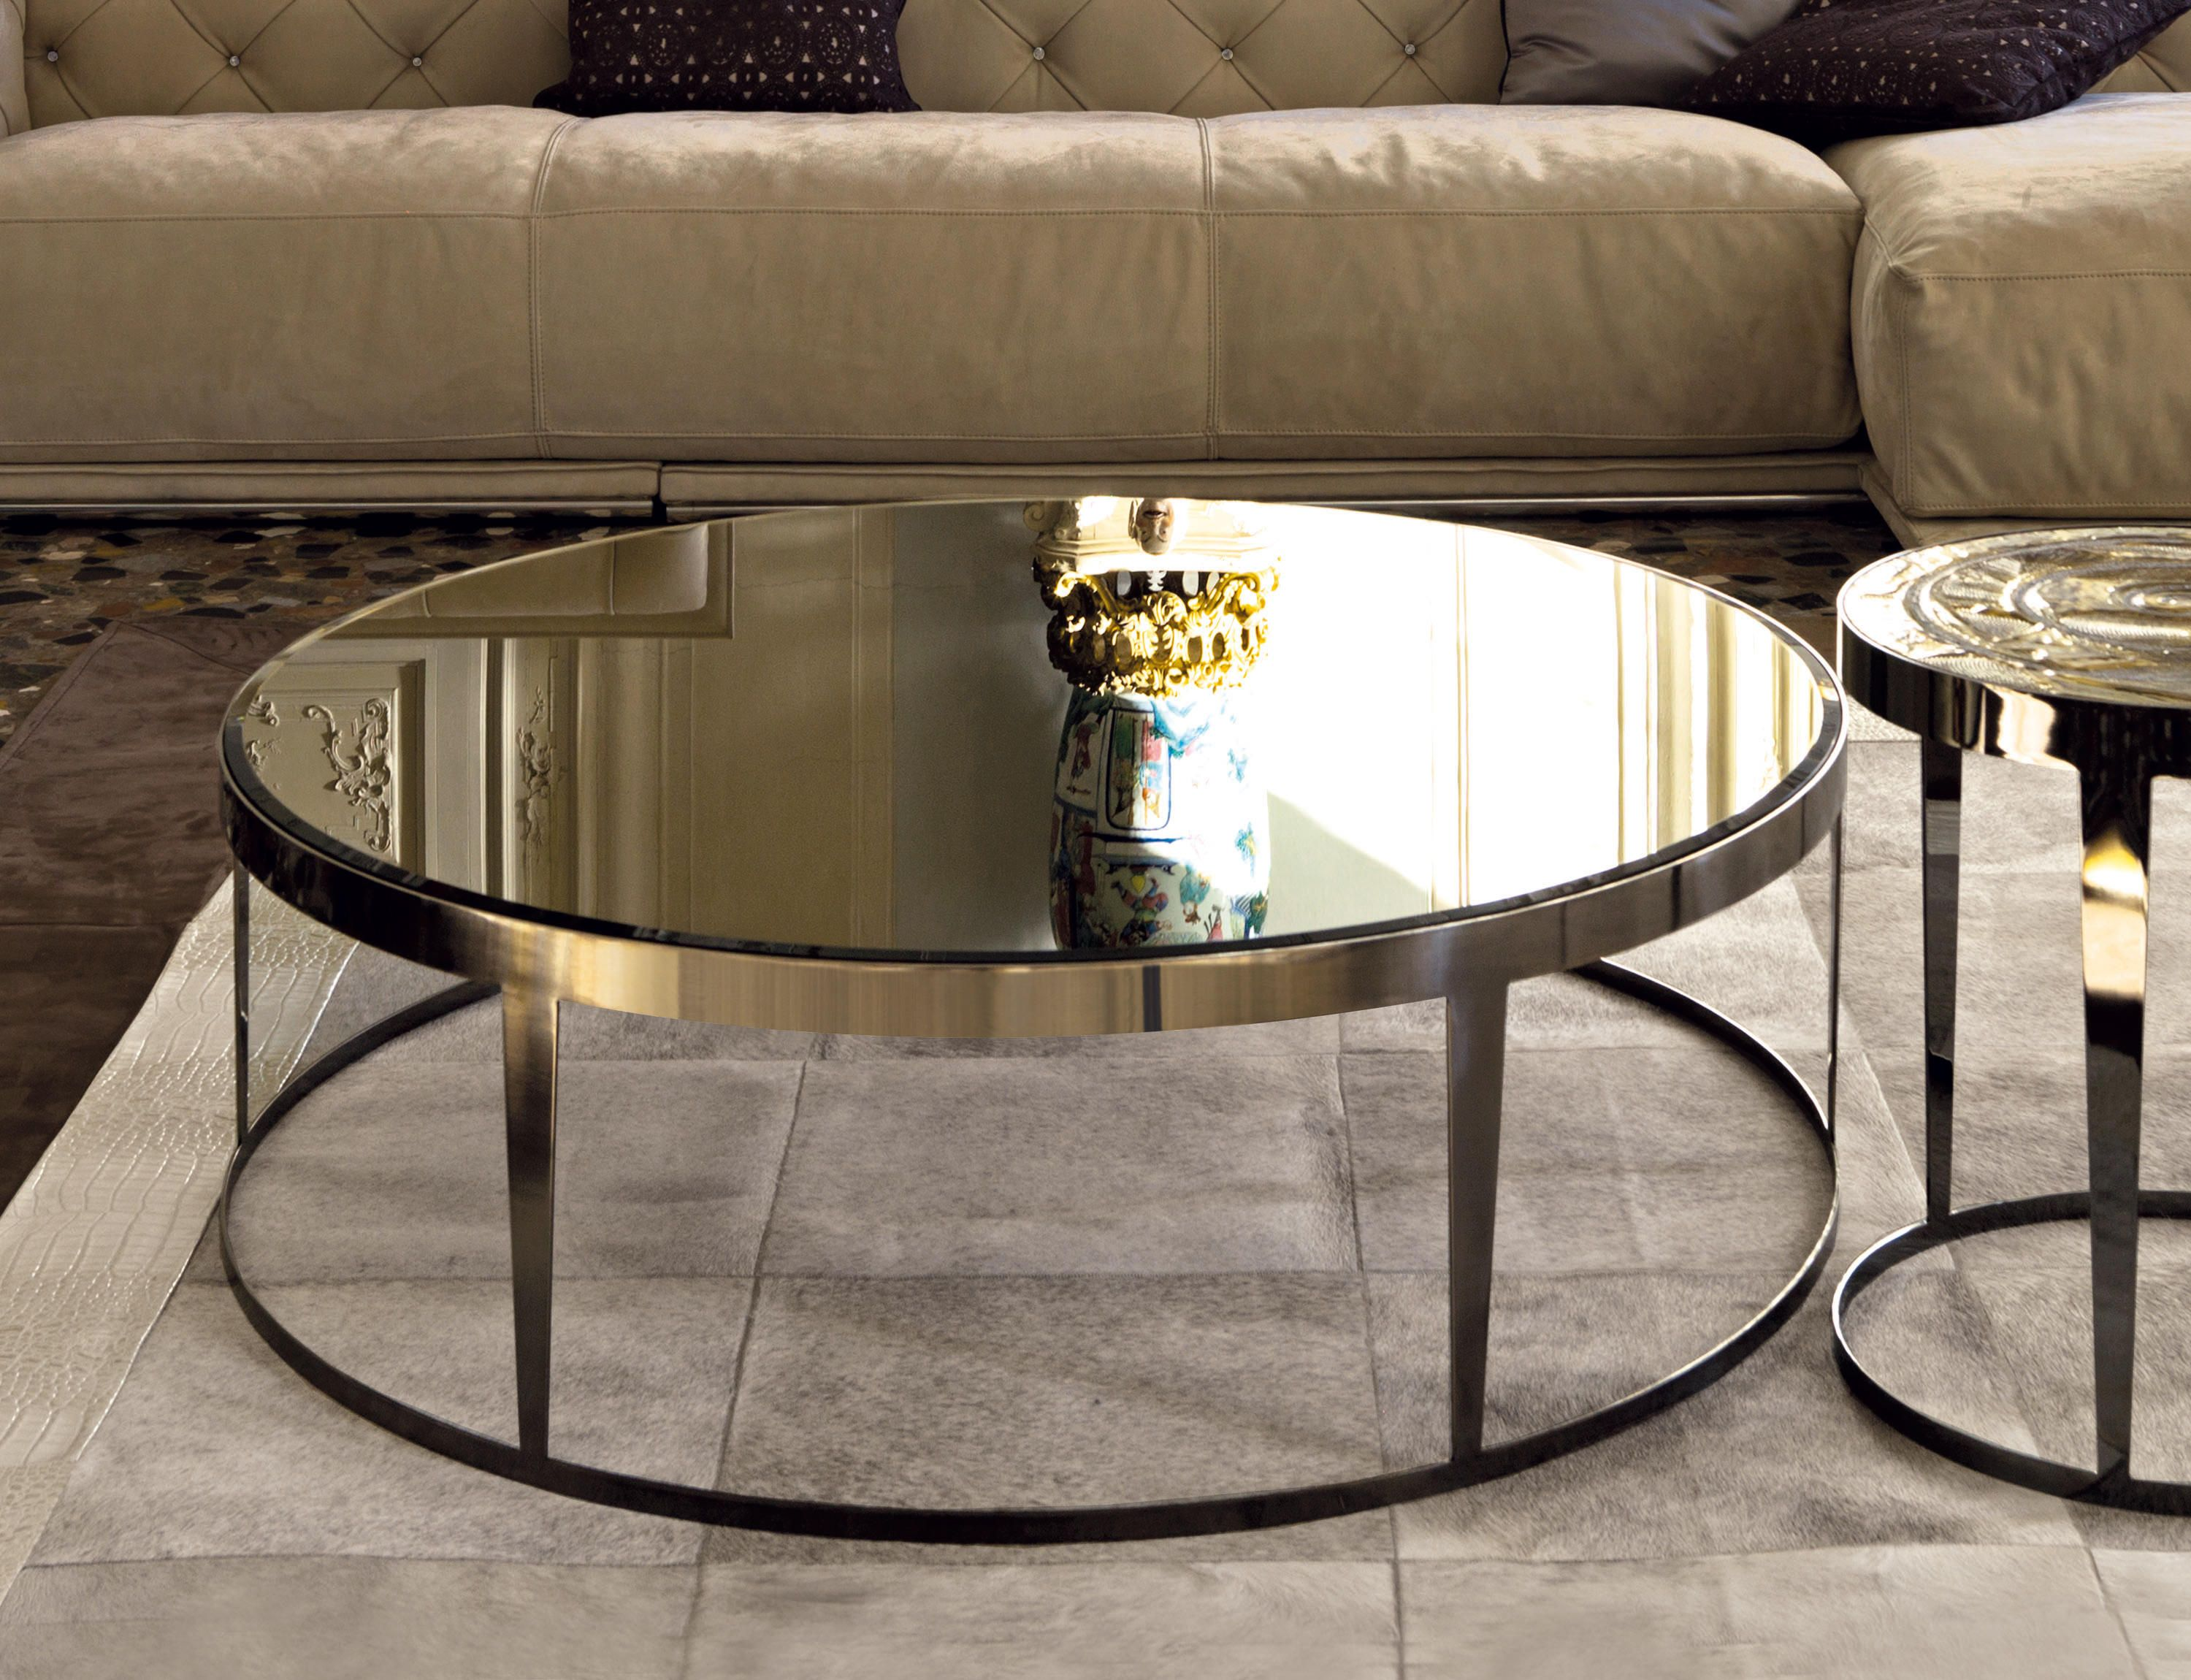 Amadeus Designer Coffee Tables From Longhi All Information High Resolution Images C Mirrored Coffee Tables Modern Glass Coffee Table Glass Coffee Table [ 2300 x 3000 Pixel ]